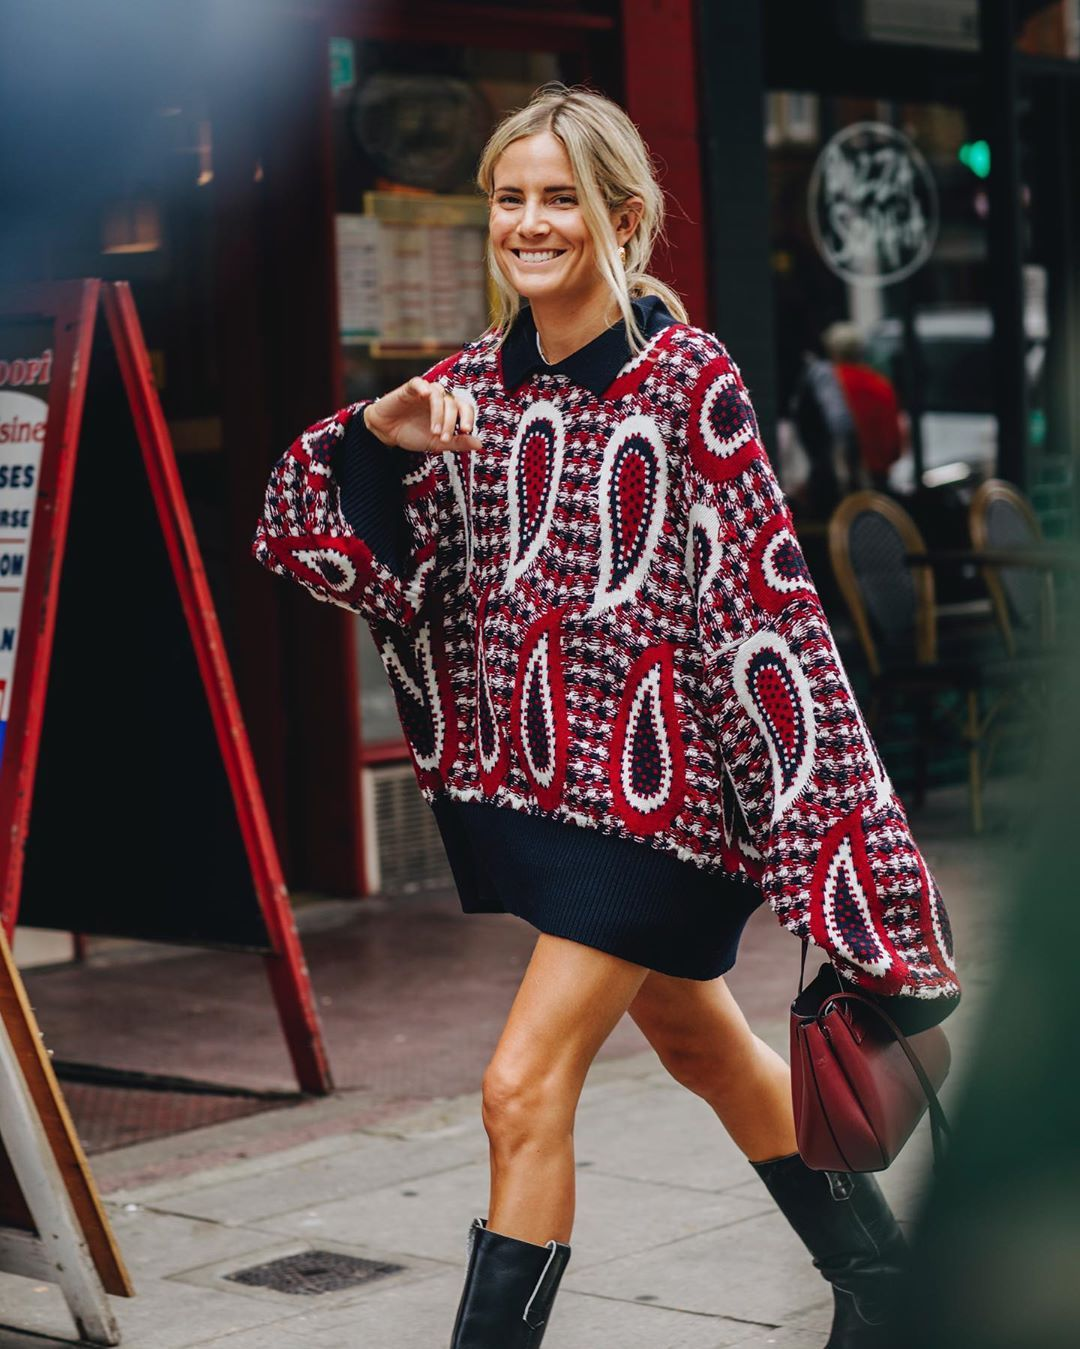 lucy-williams-j-w-anderson-paisley-sweater-street-style-london